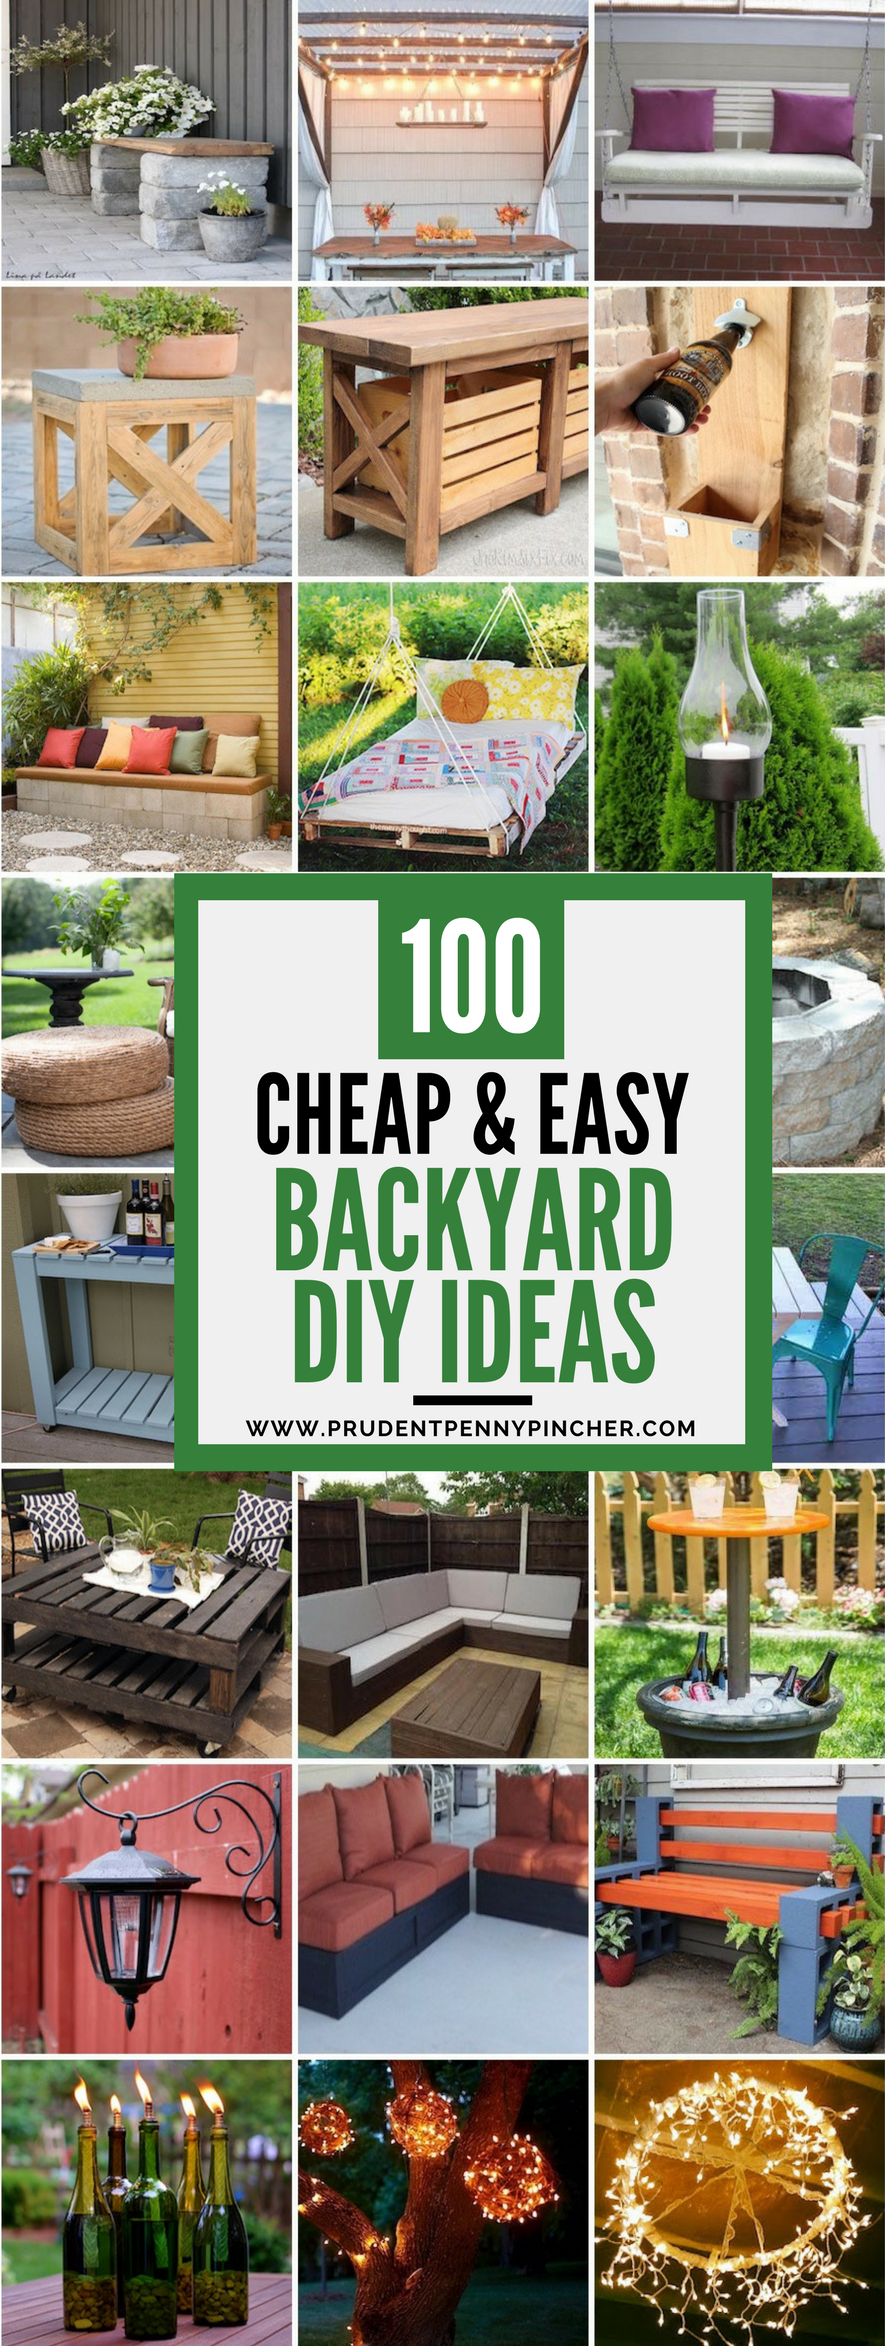 Garden decor craft ideas   Cheap and Easy DIY Backyard Ideas  Diy backyard ideas Backyard